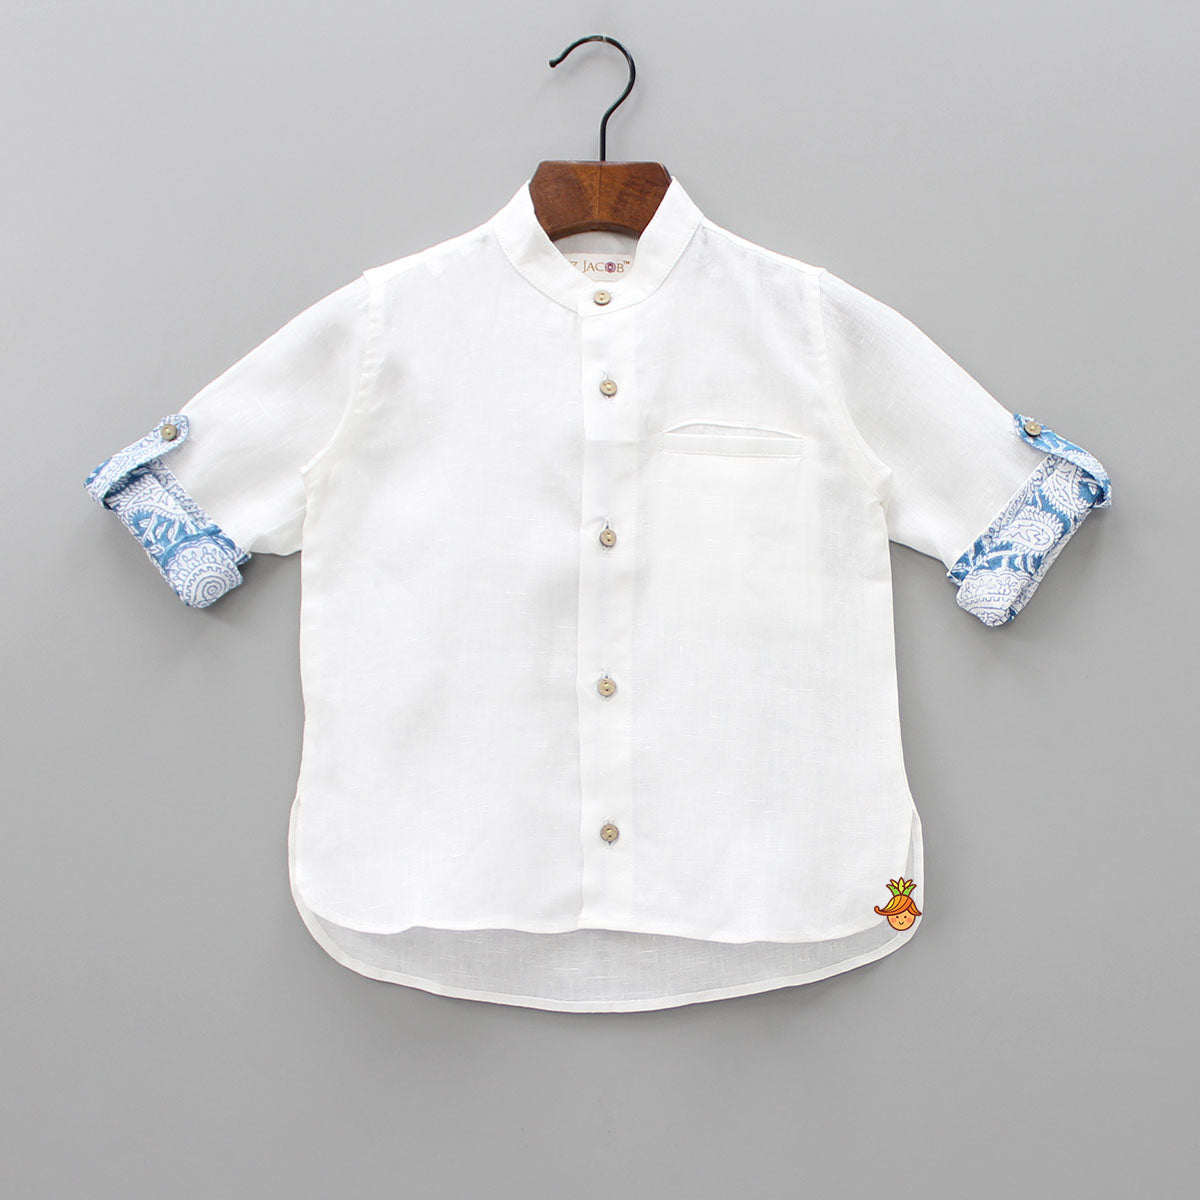 White Shirt With Printed Sleeve Turn-Ups